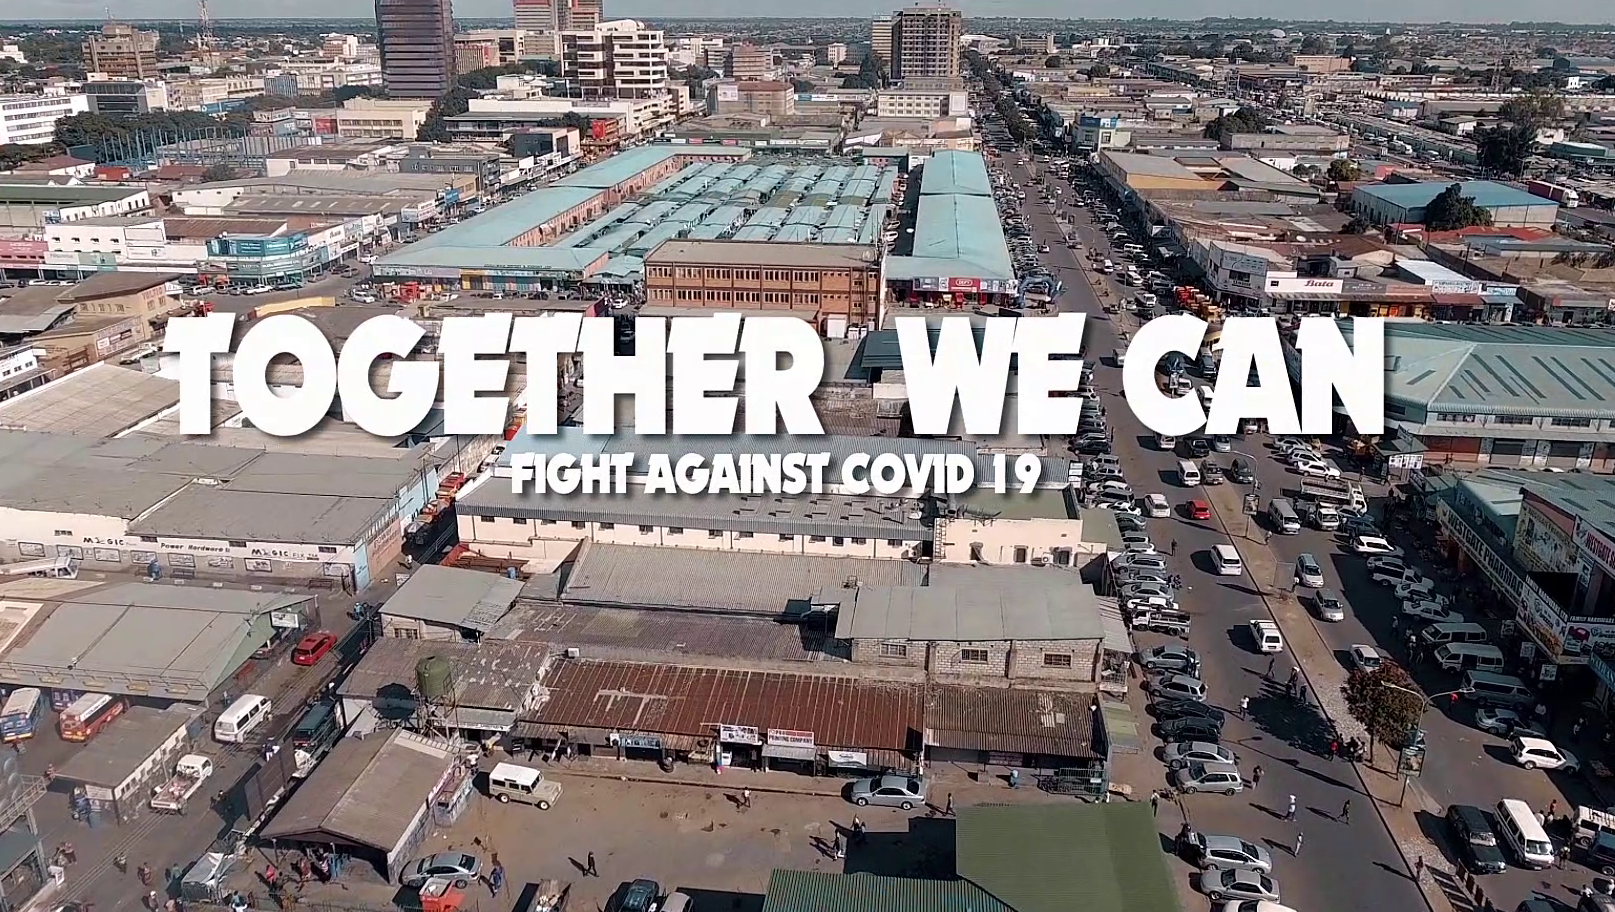 Together We can (COVID-19 AWARENESS SONG)